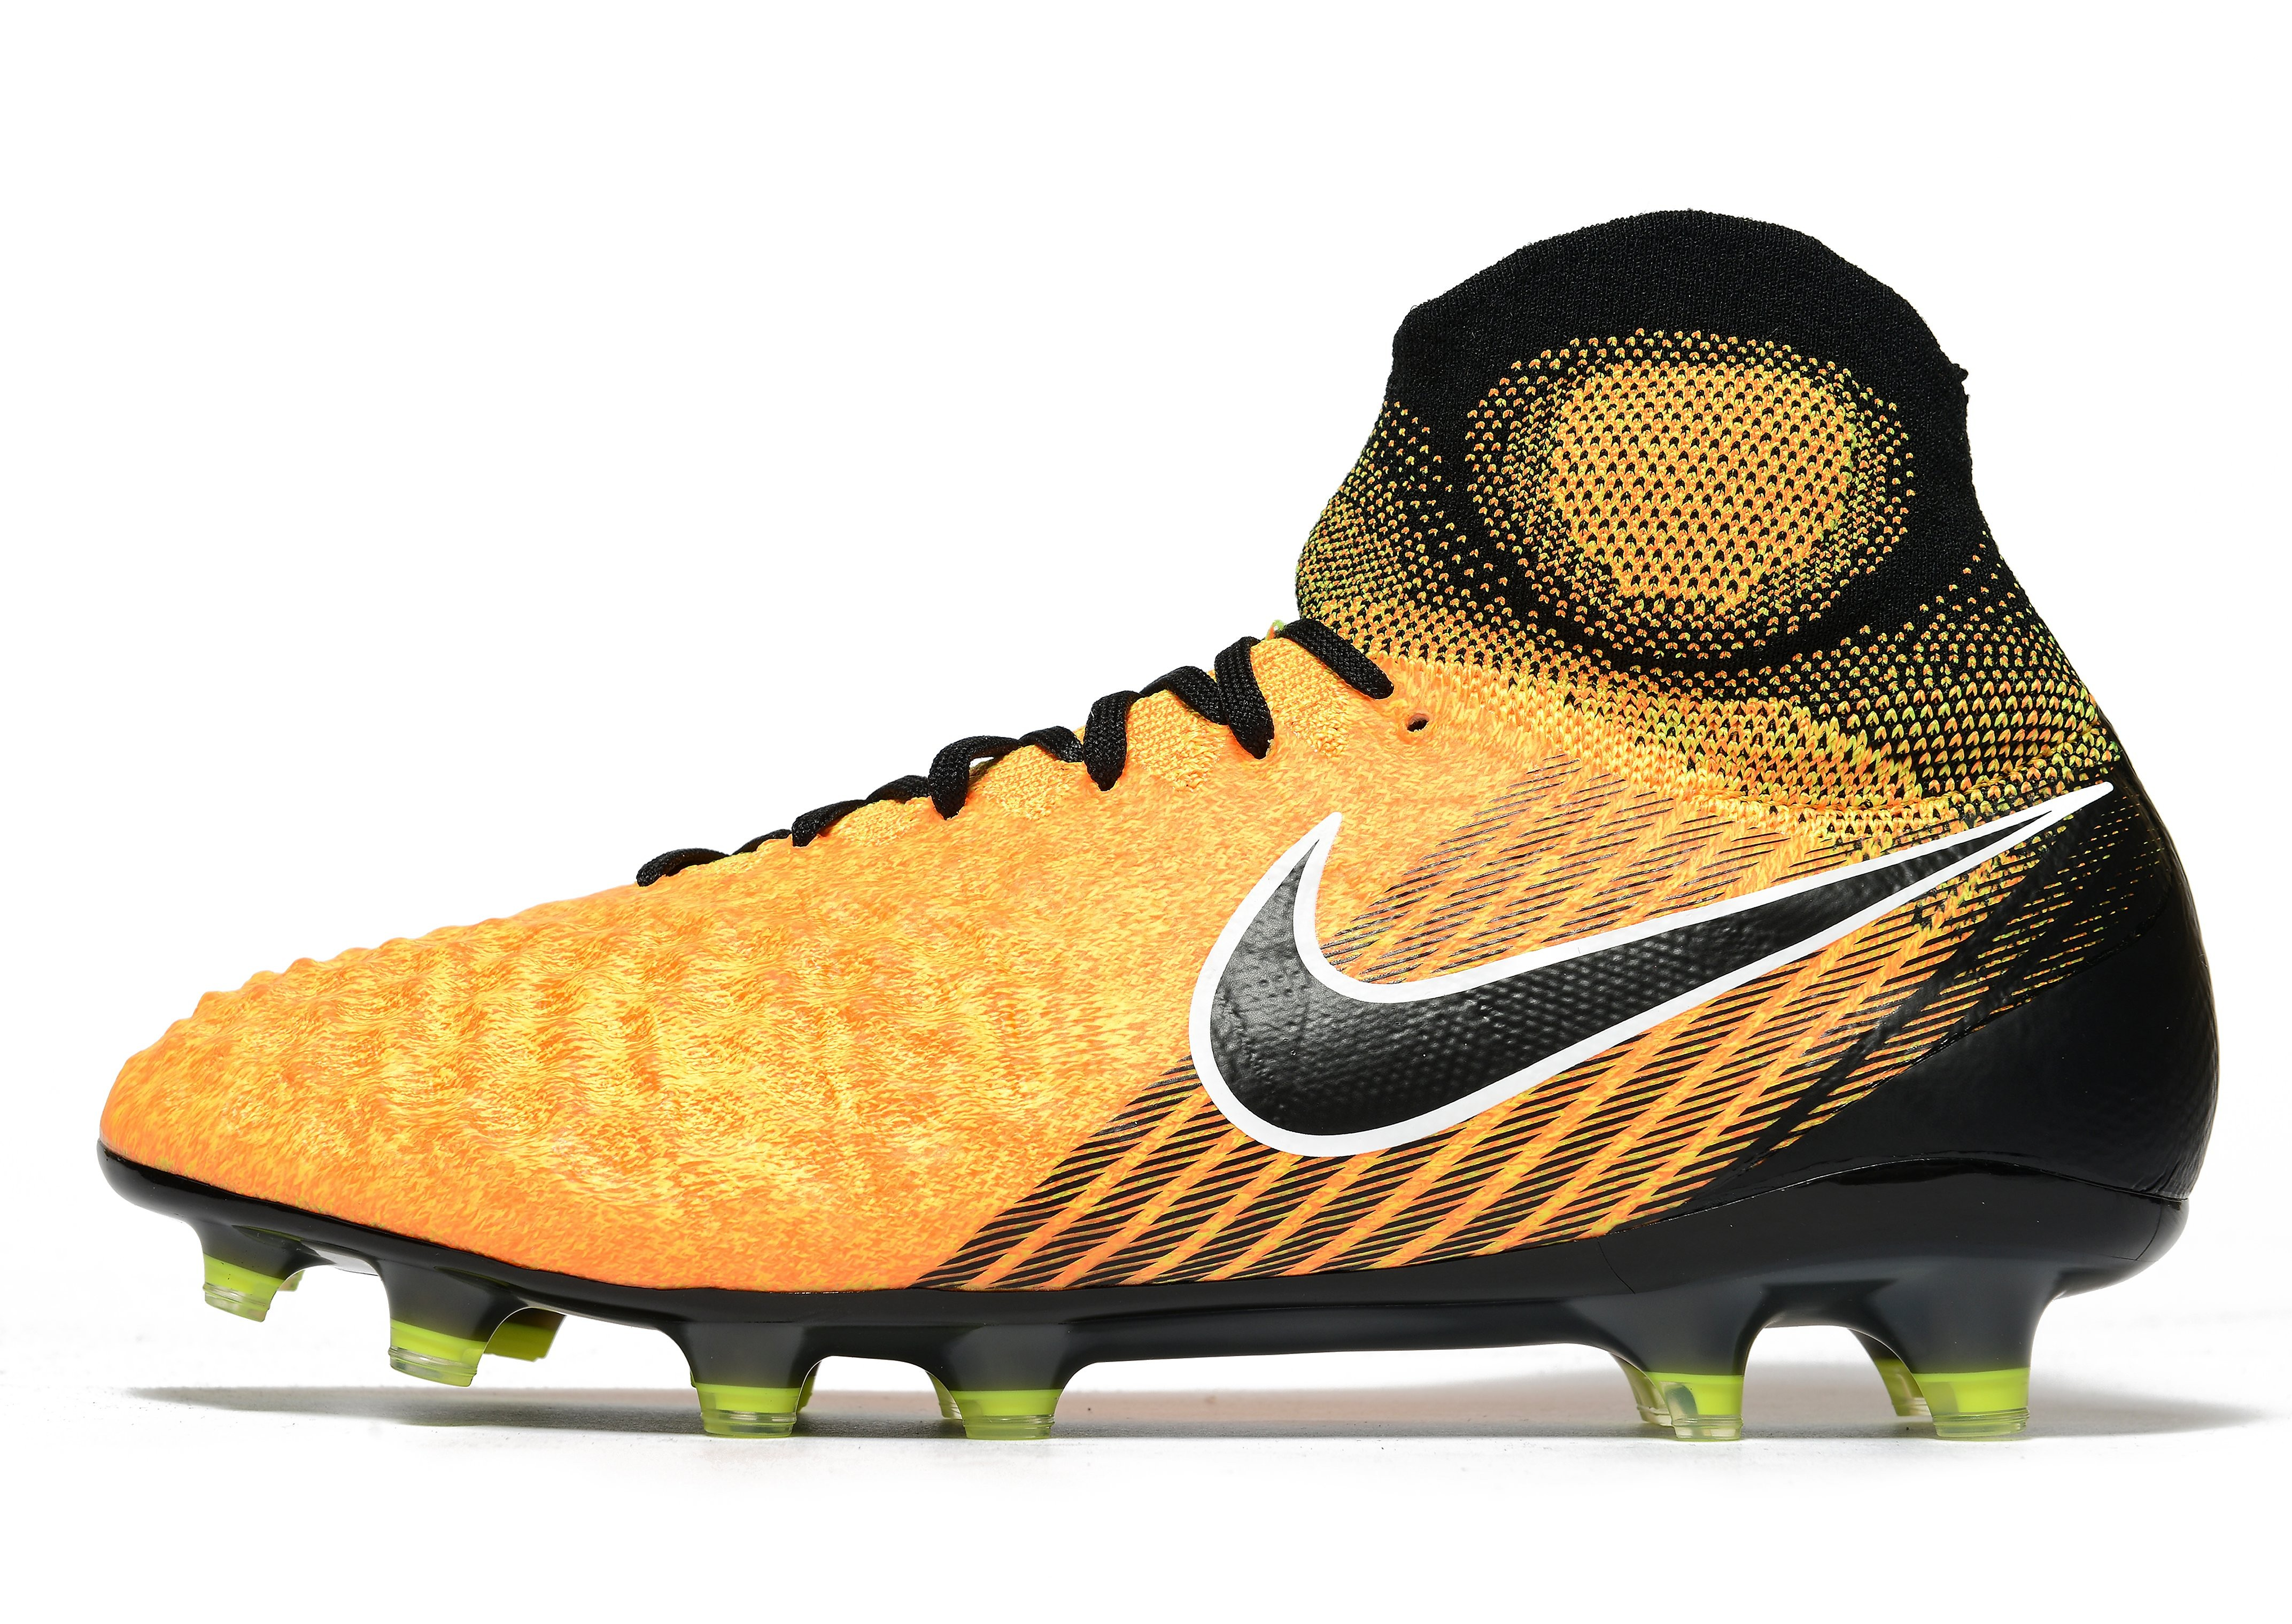 Nike Lock In Let Loose Magista Obra II FG